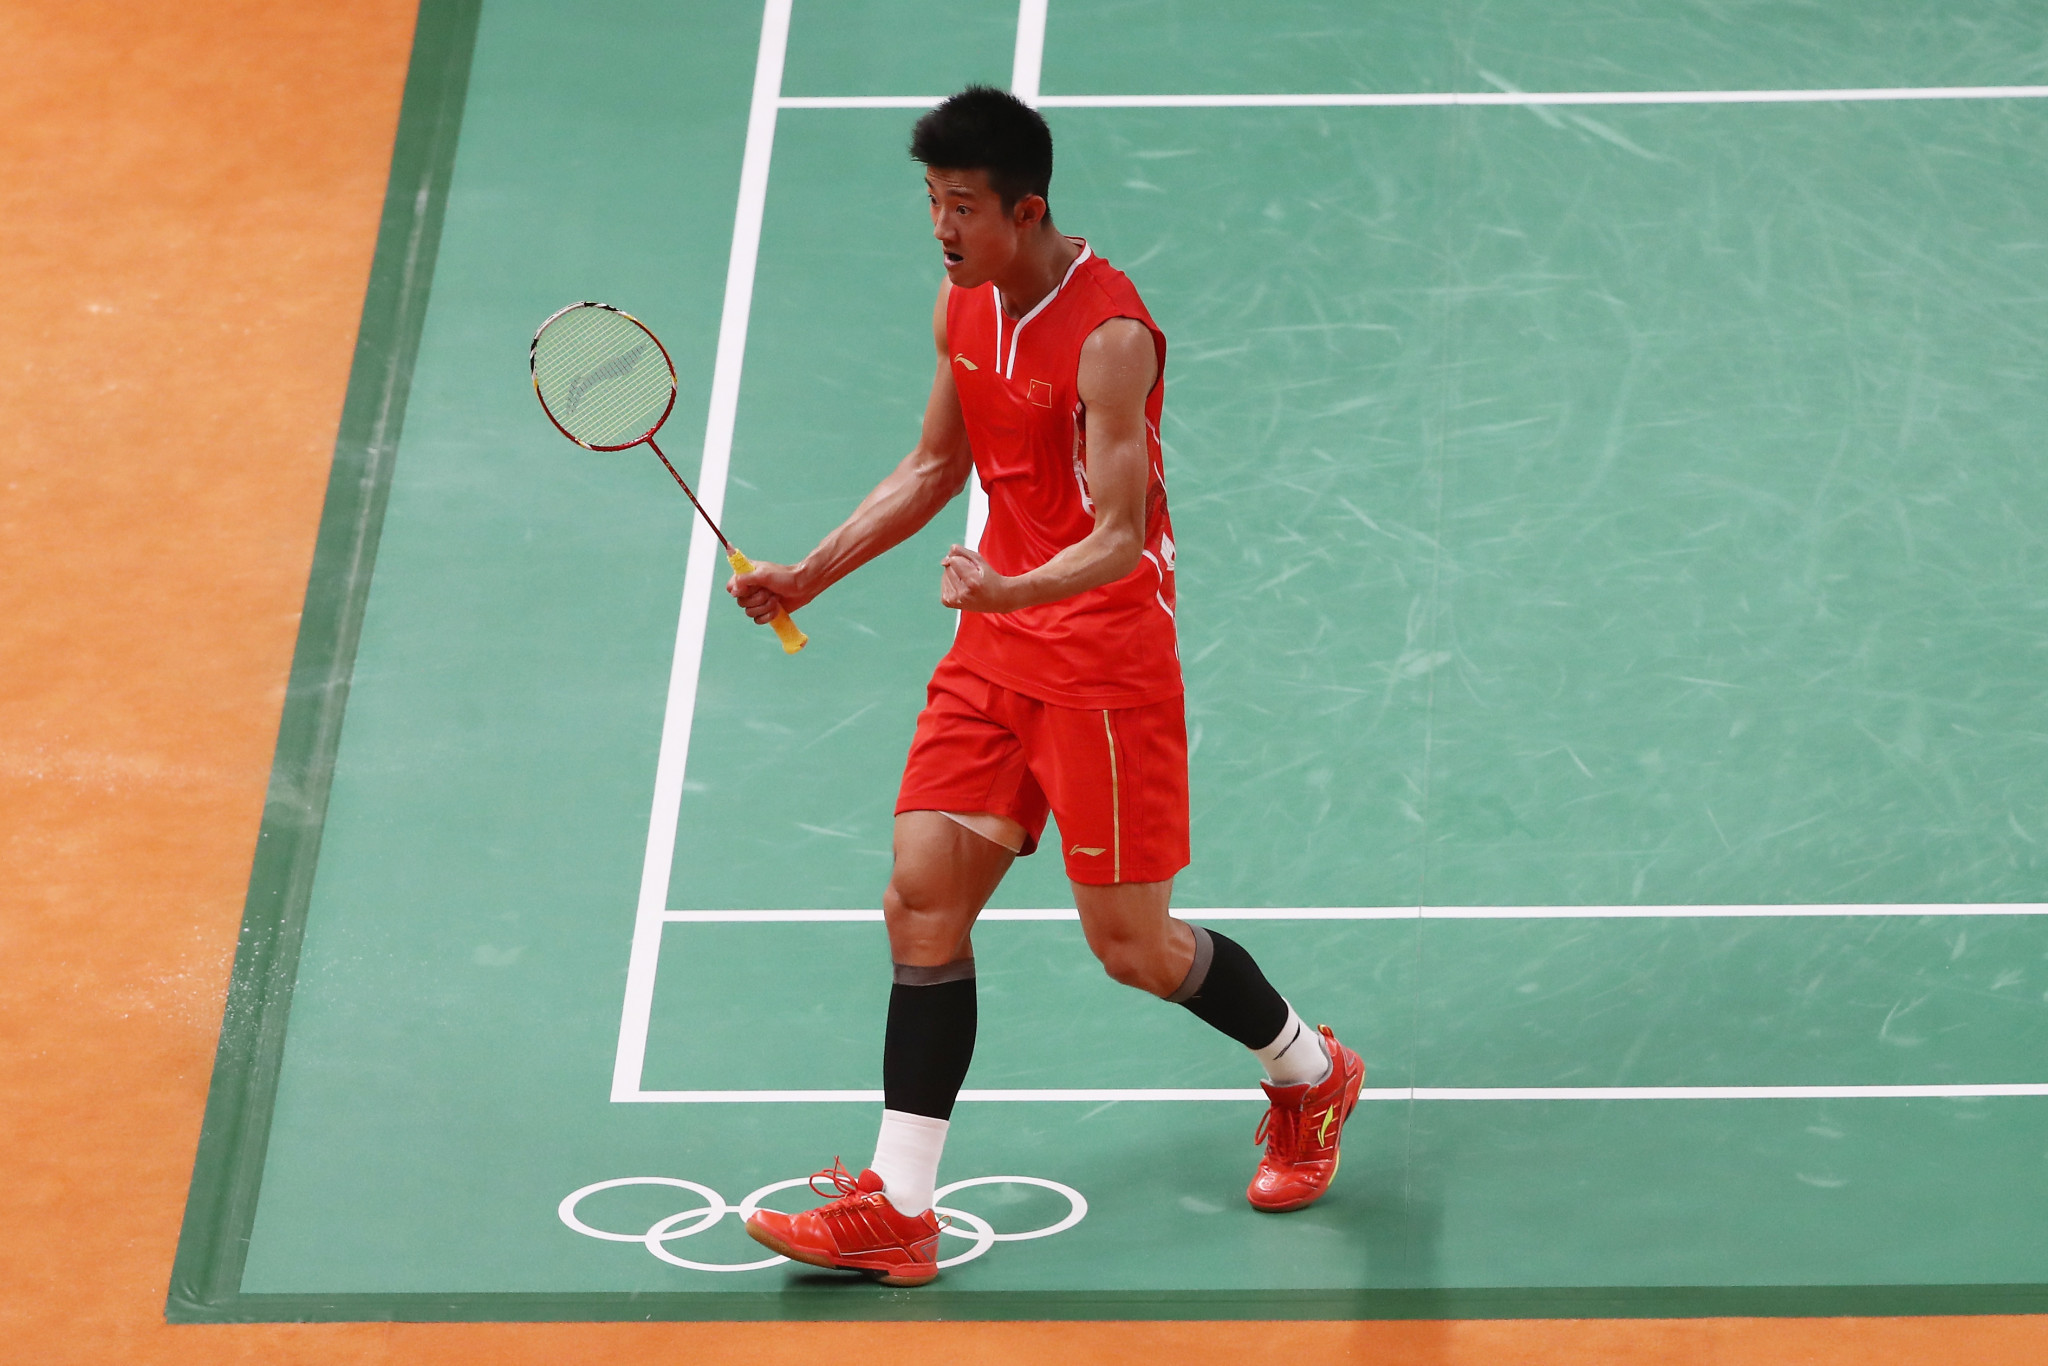 Qualification period for Tokyo 2020 badminton tournaments extended